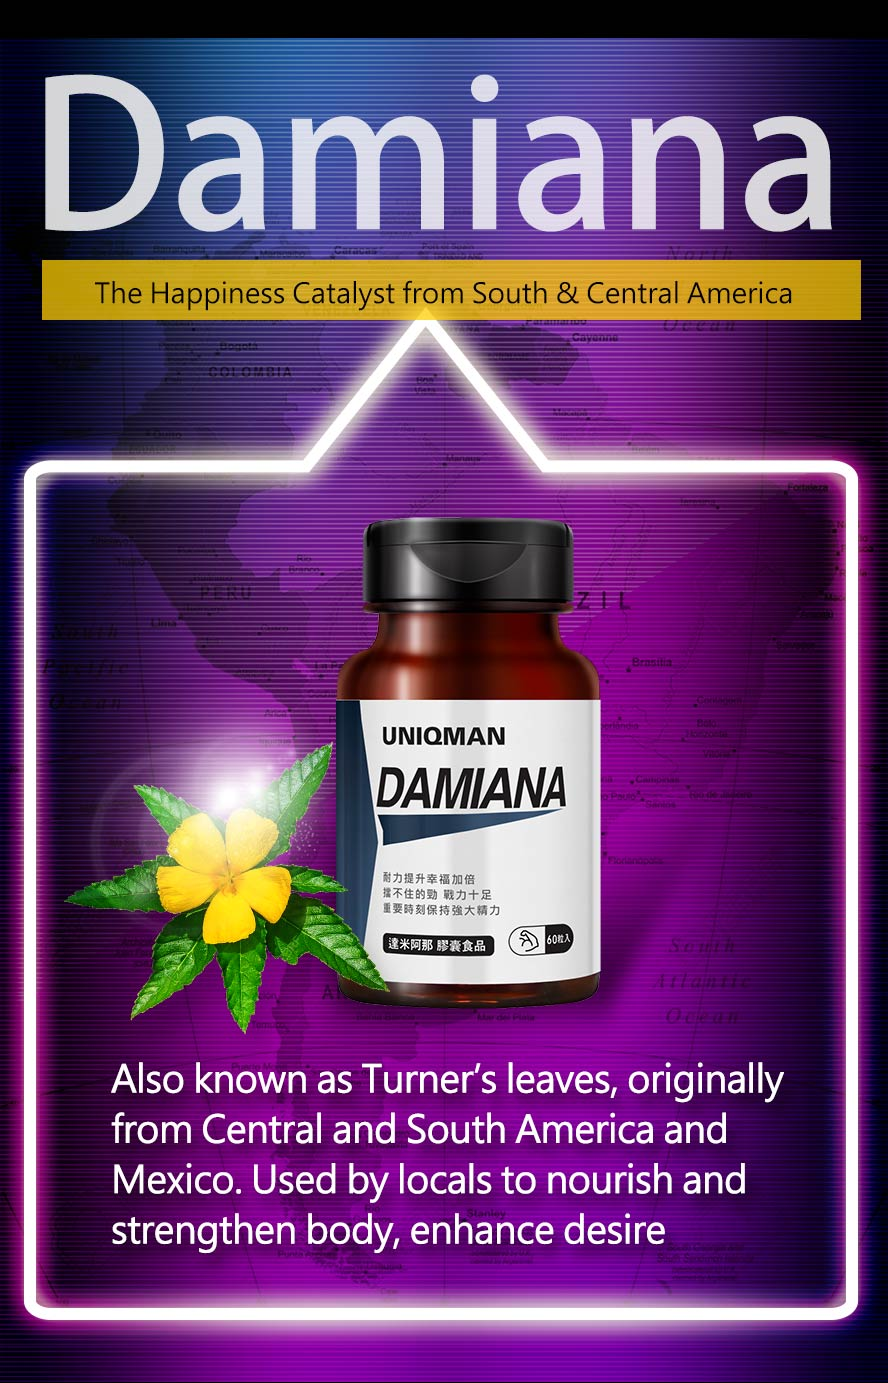 UNIQMAN Damiana contains chelated zinc to help maintain reproductive function